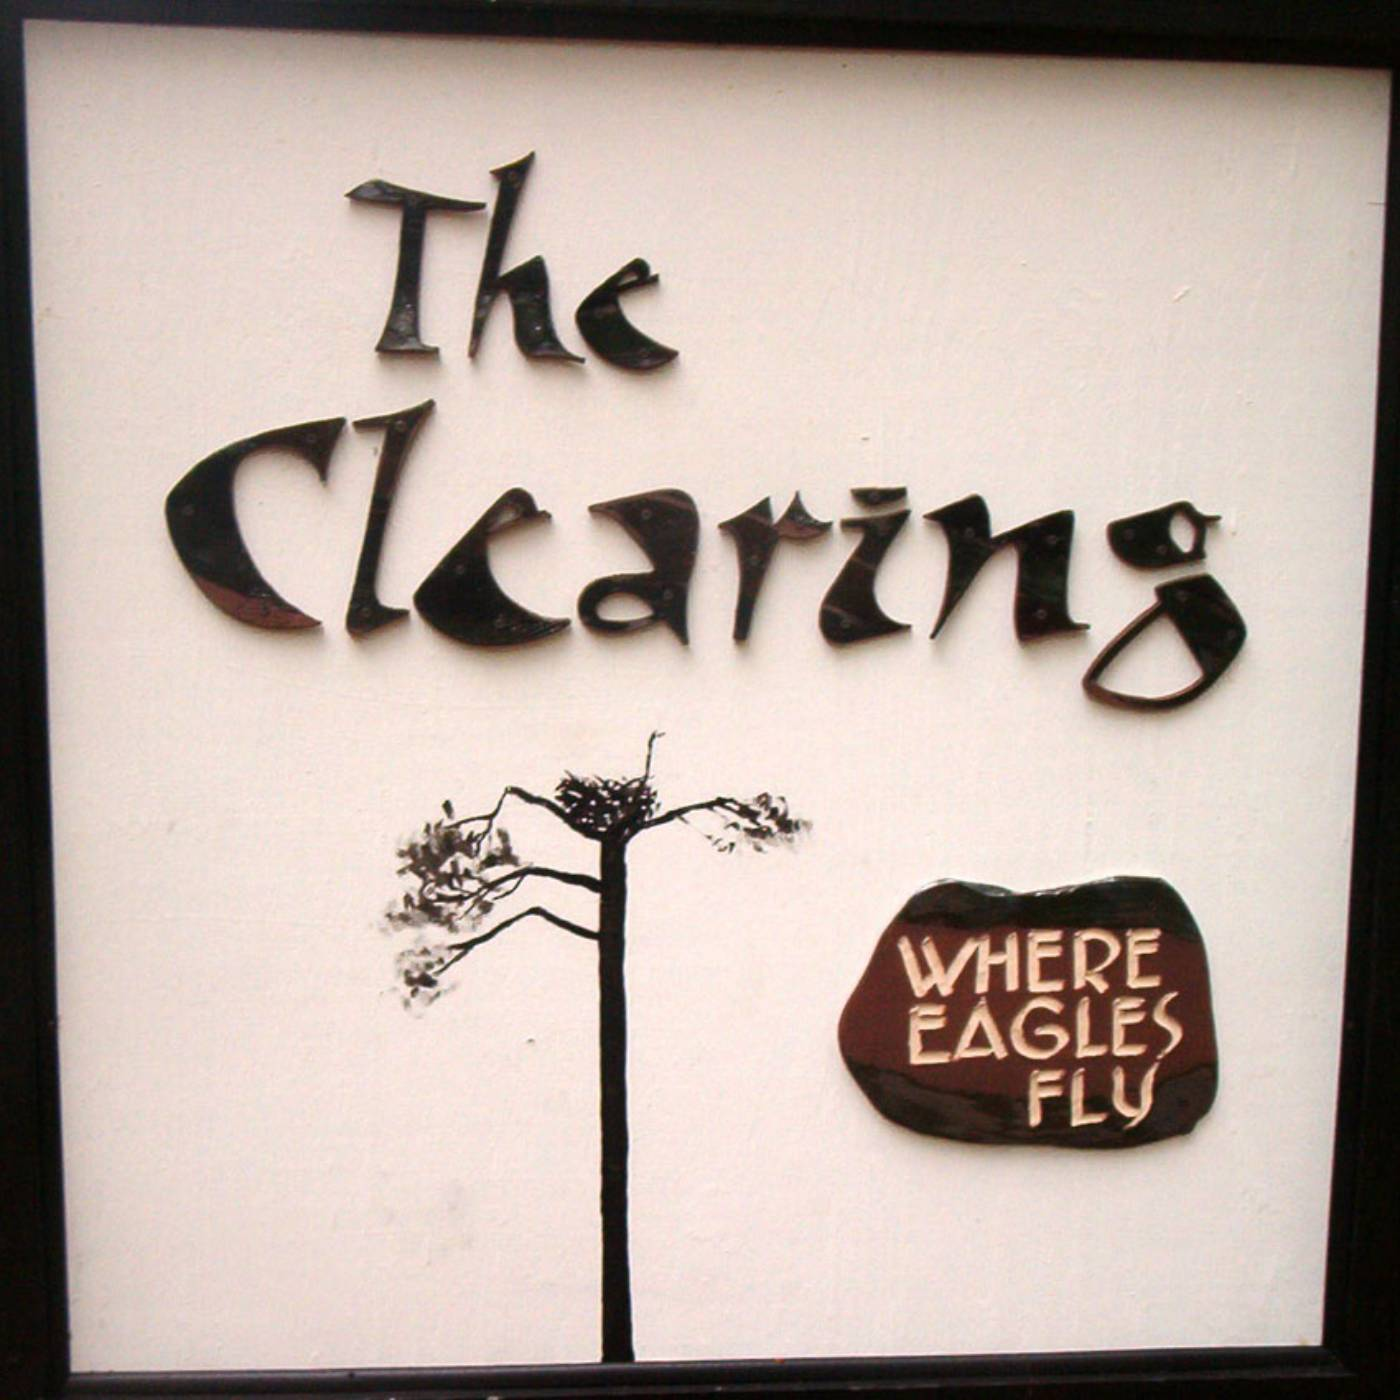 The Clearing - Where Eagles Fly